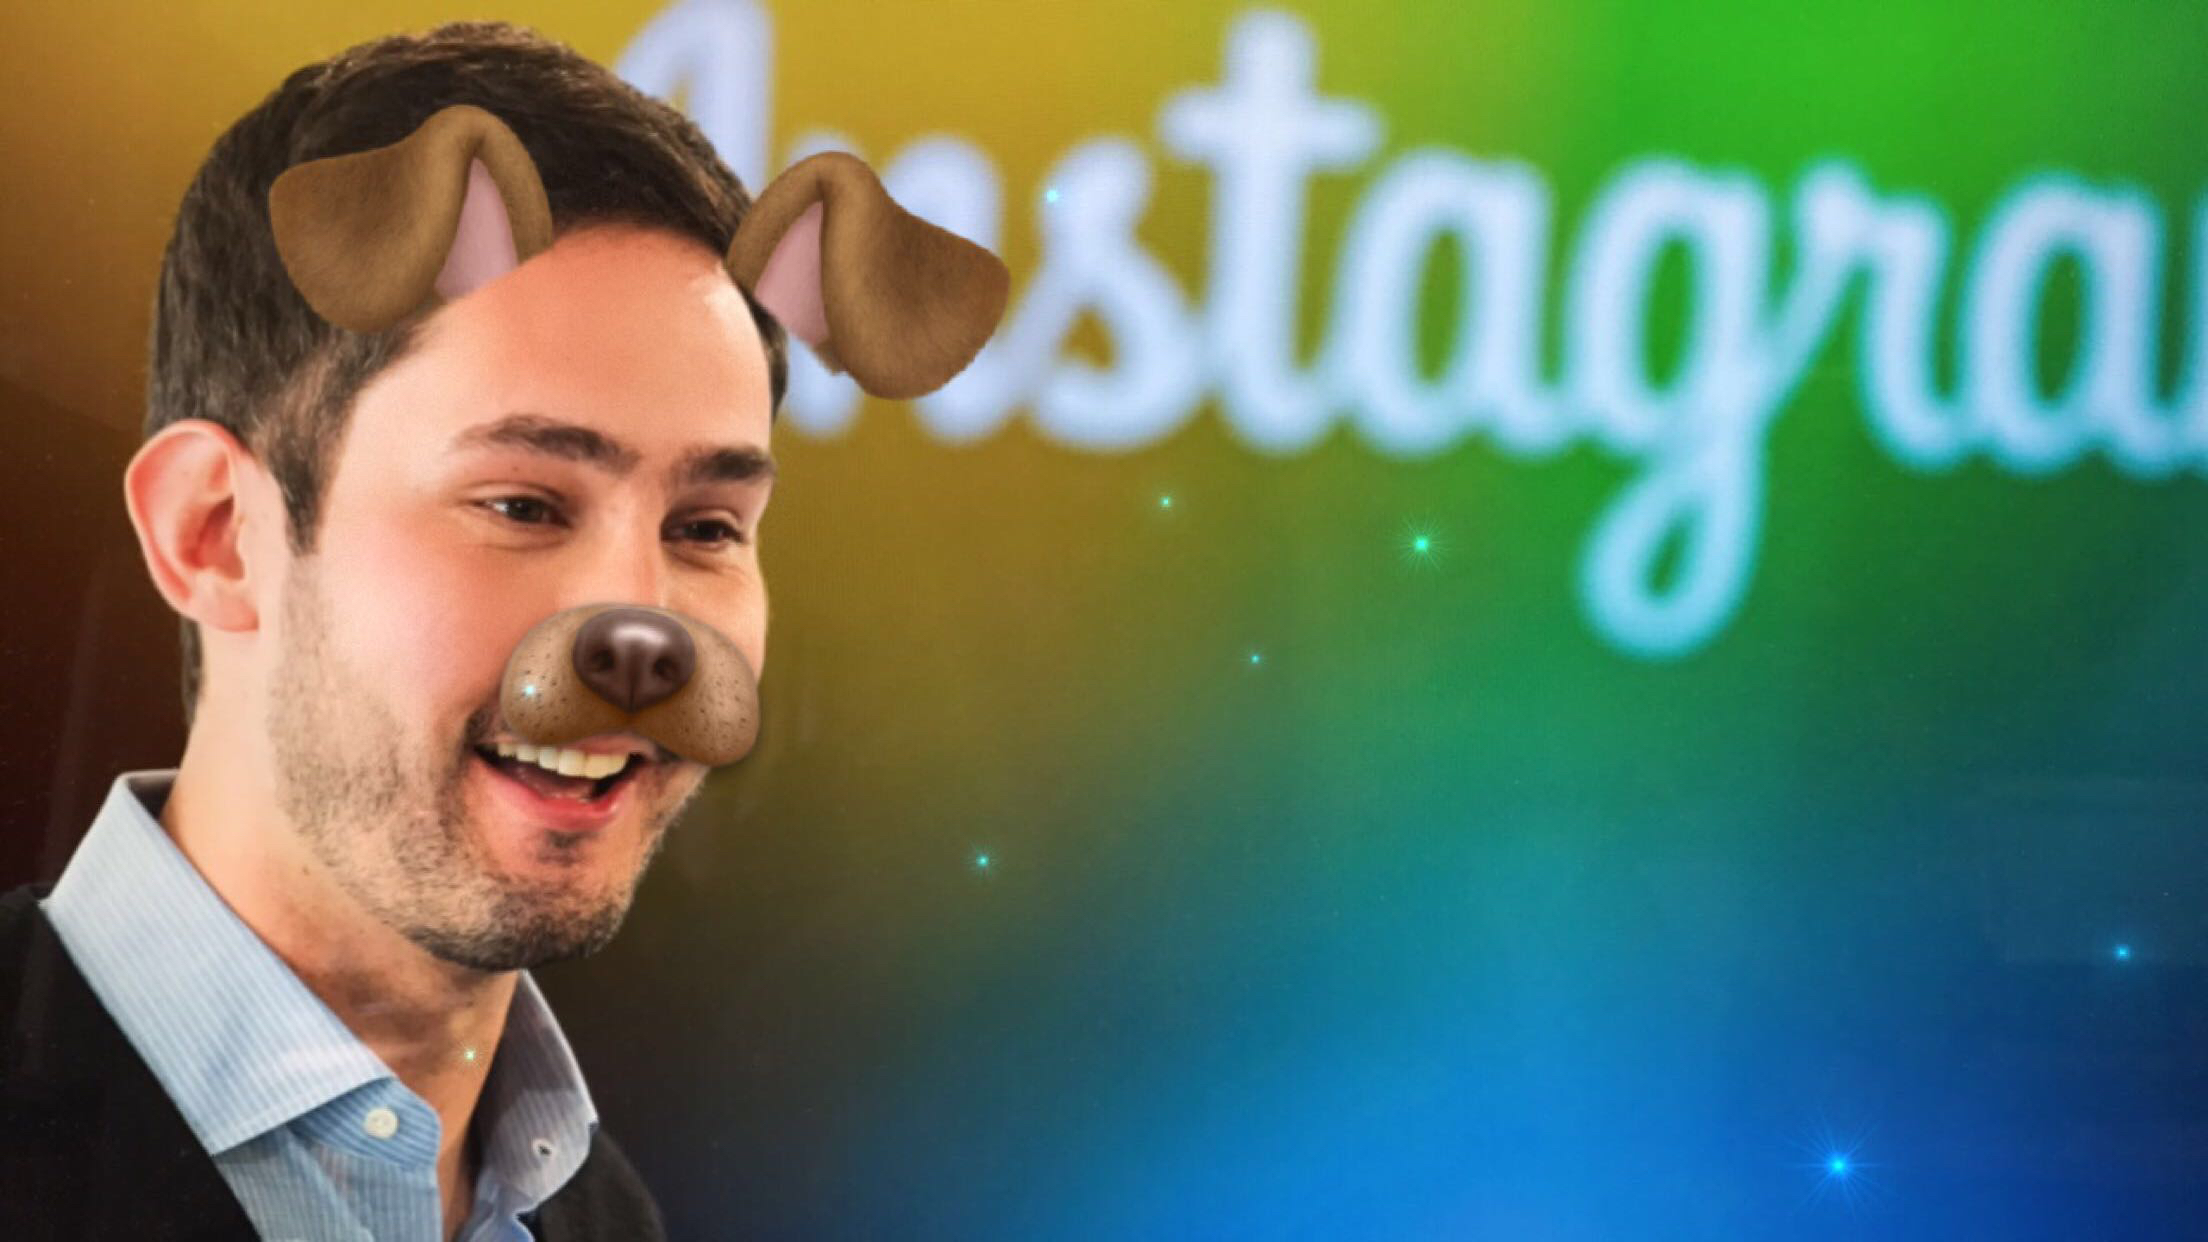 Instagram CEO and co-founder Systrom smiles during the launch of Instagram Direct in New York